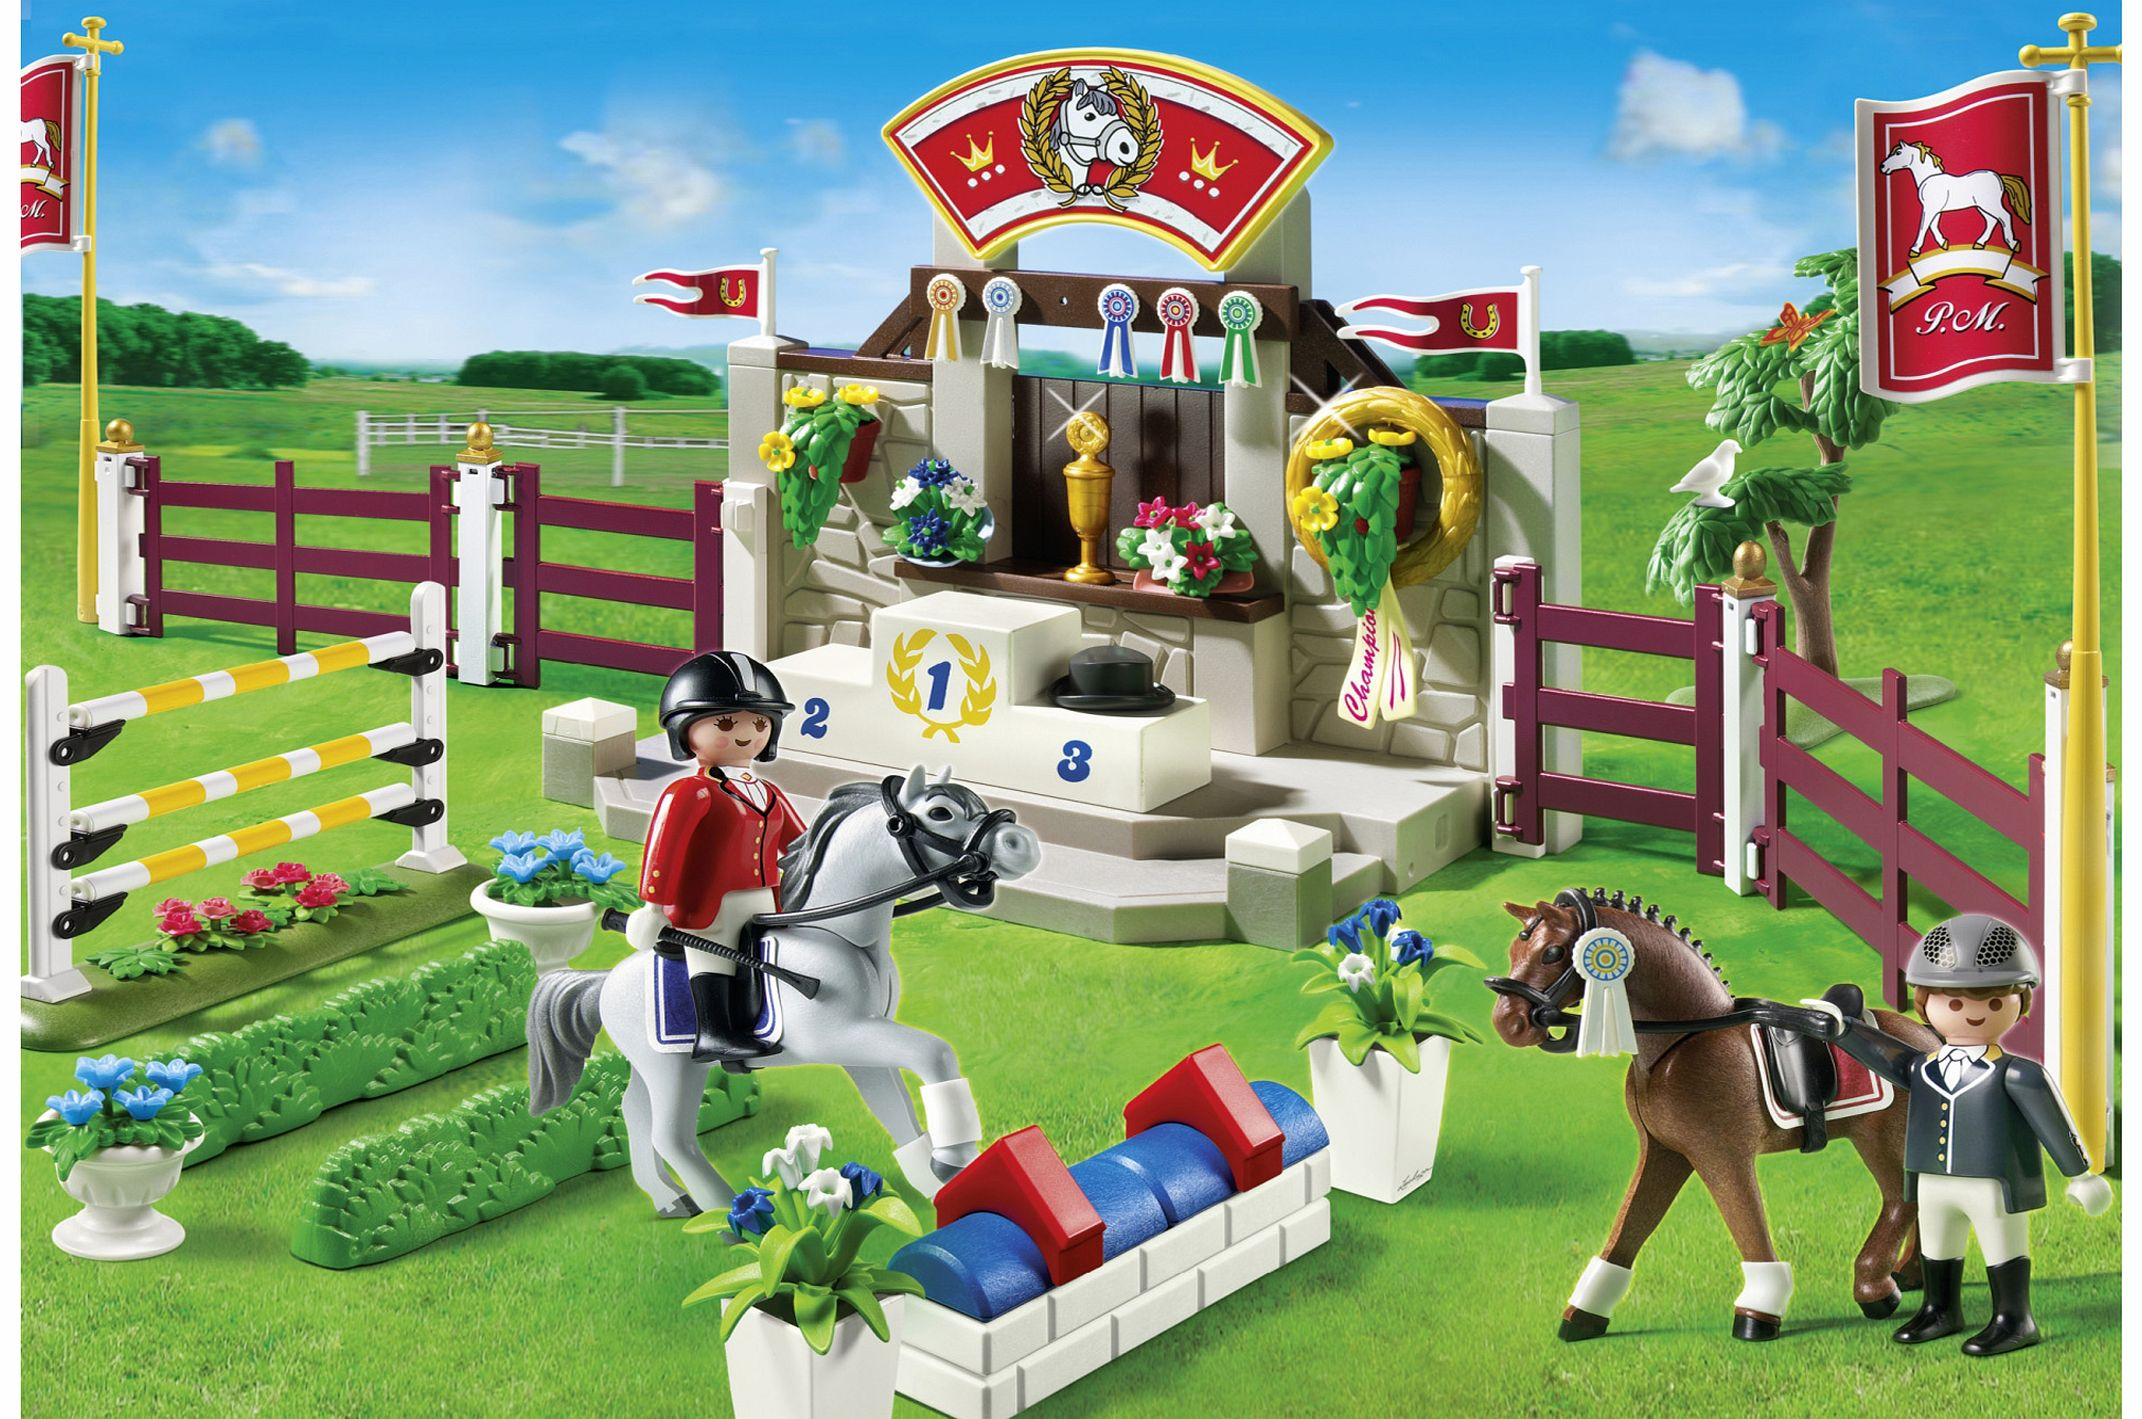 5564 besides Playmobil 5245 Western Fort 1 additionally Playmobil 6351 Wall Extension For Asian Dragon Castles 5479 5480 1 also Playmobil Suv With Horse Trailer 5223 additionally Plasticine Activity Bucket. on playmobil uk